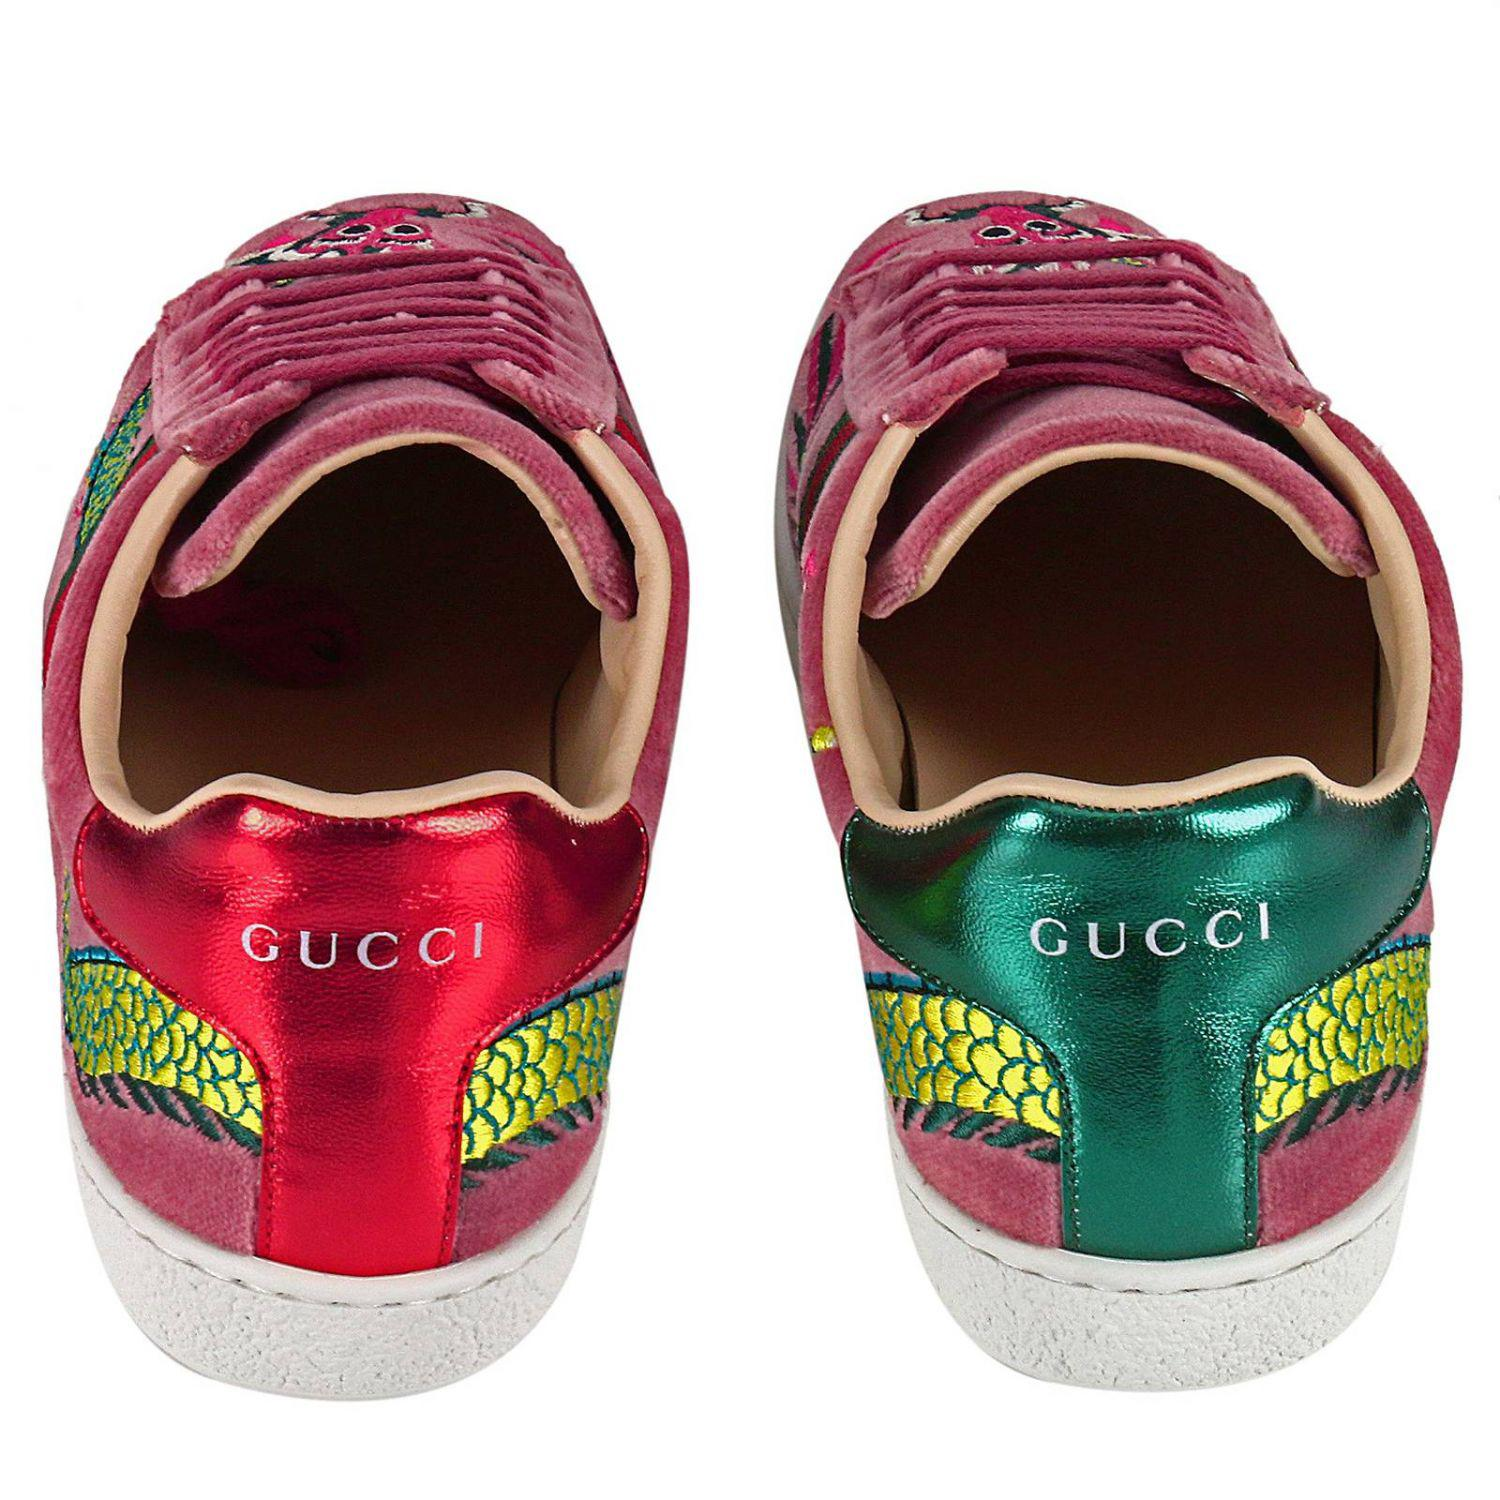 e7c46cf3dc7e Lyst - Gucci Velvet New Ace Sneaker With Side Web Bands And Dragon ...